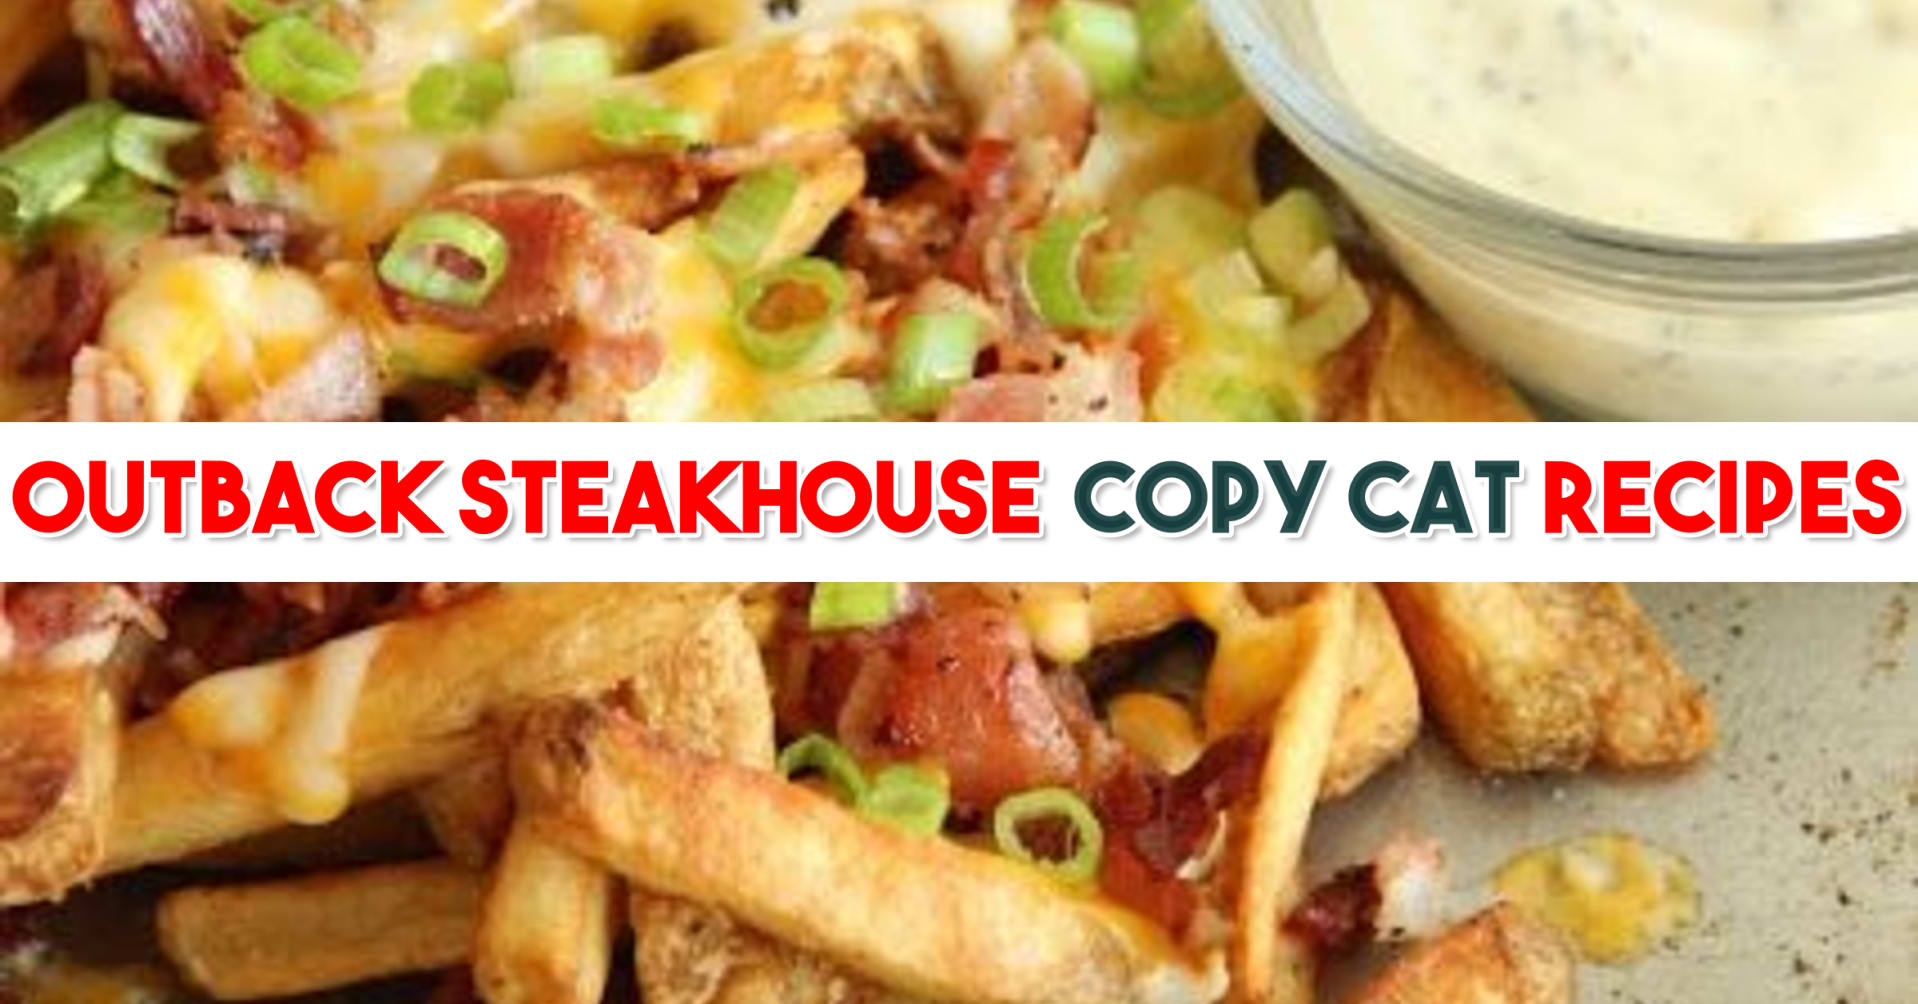 Outback Steakhouse recipes - OUtback Restaurant copy cat recipes